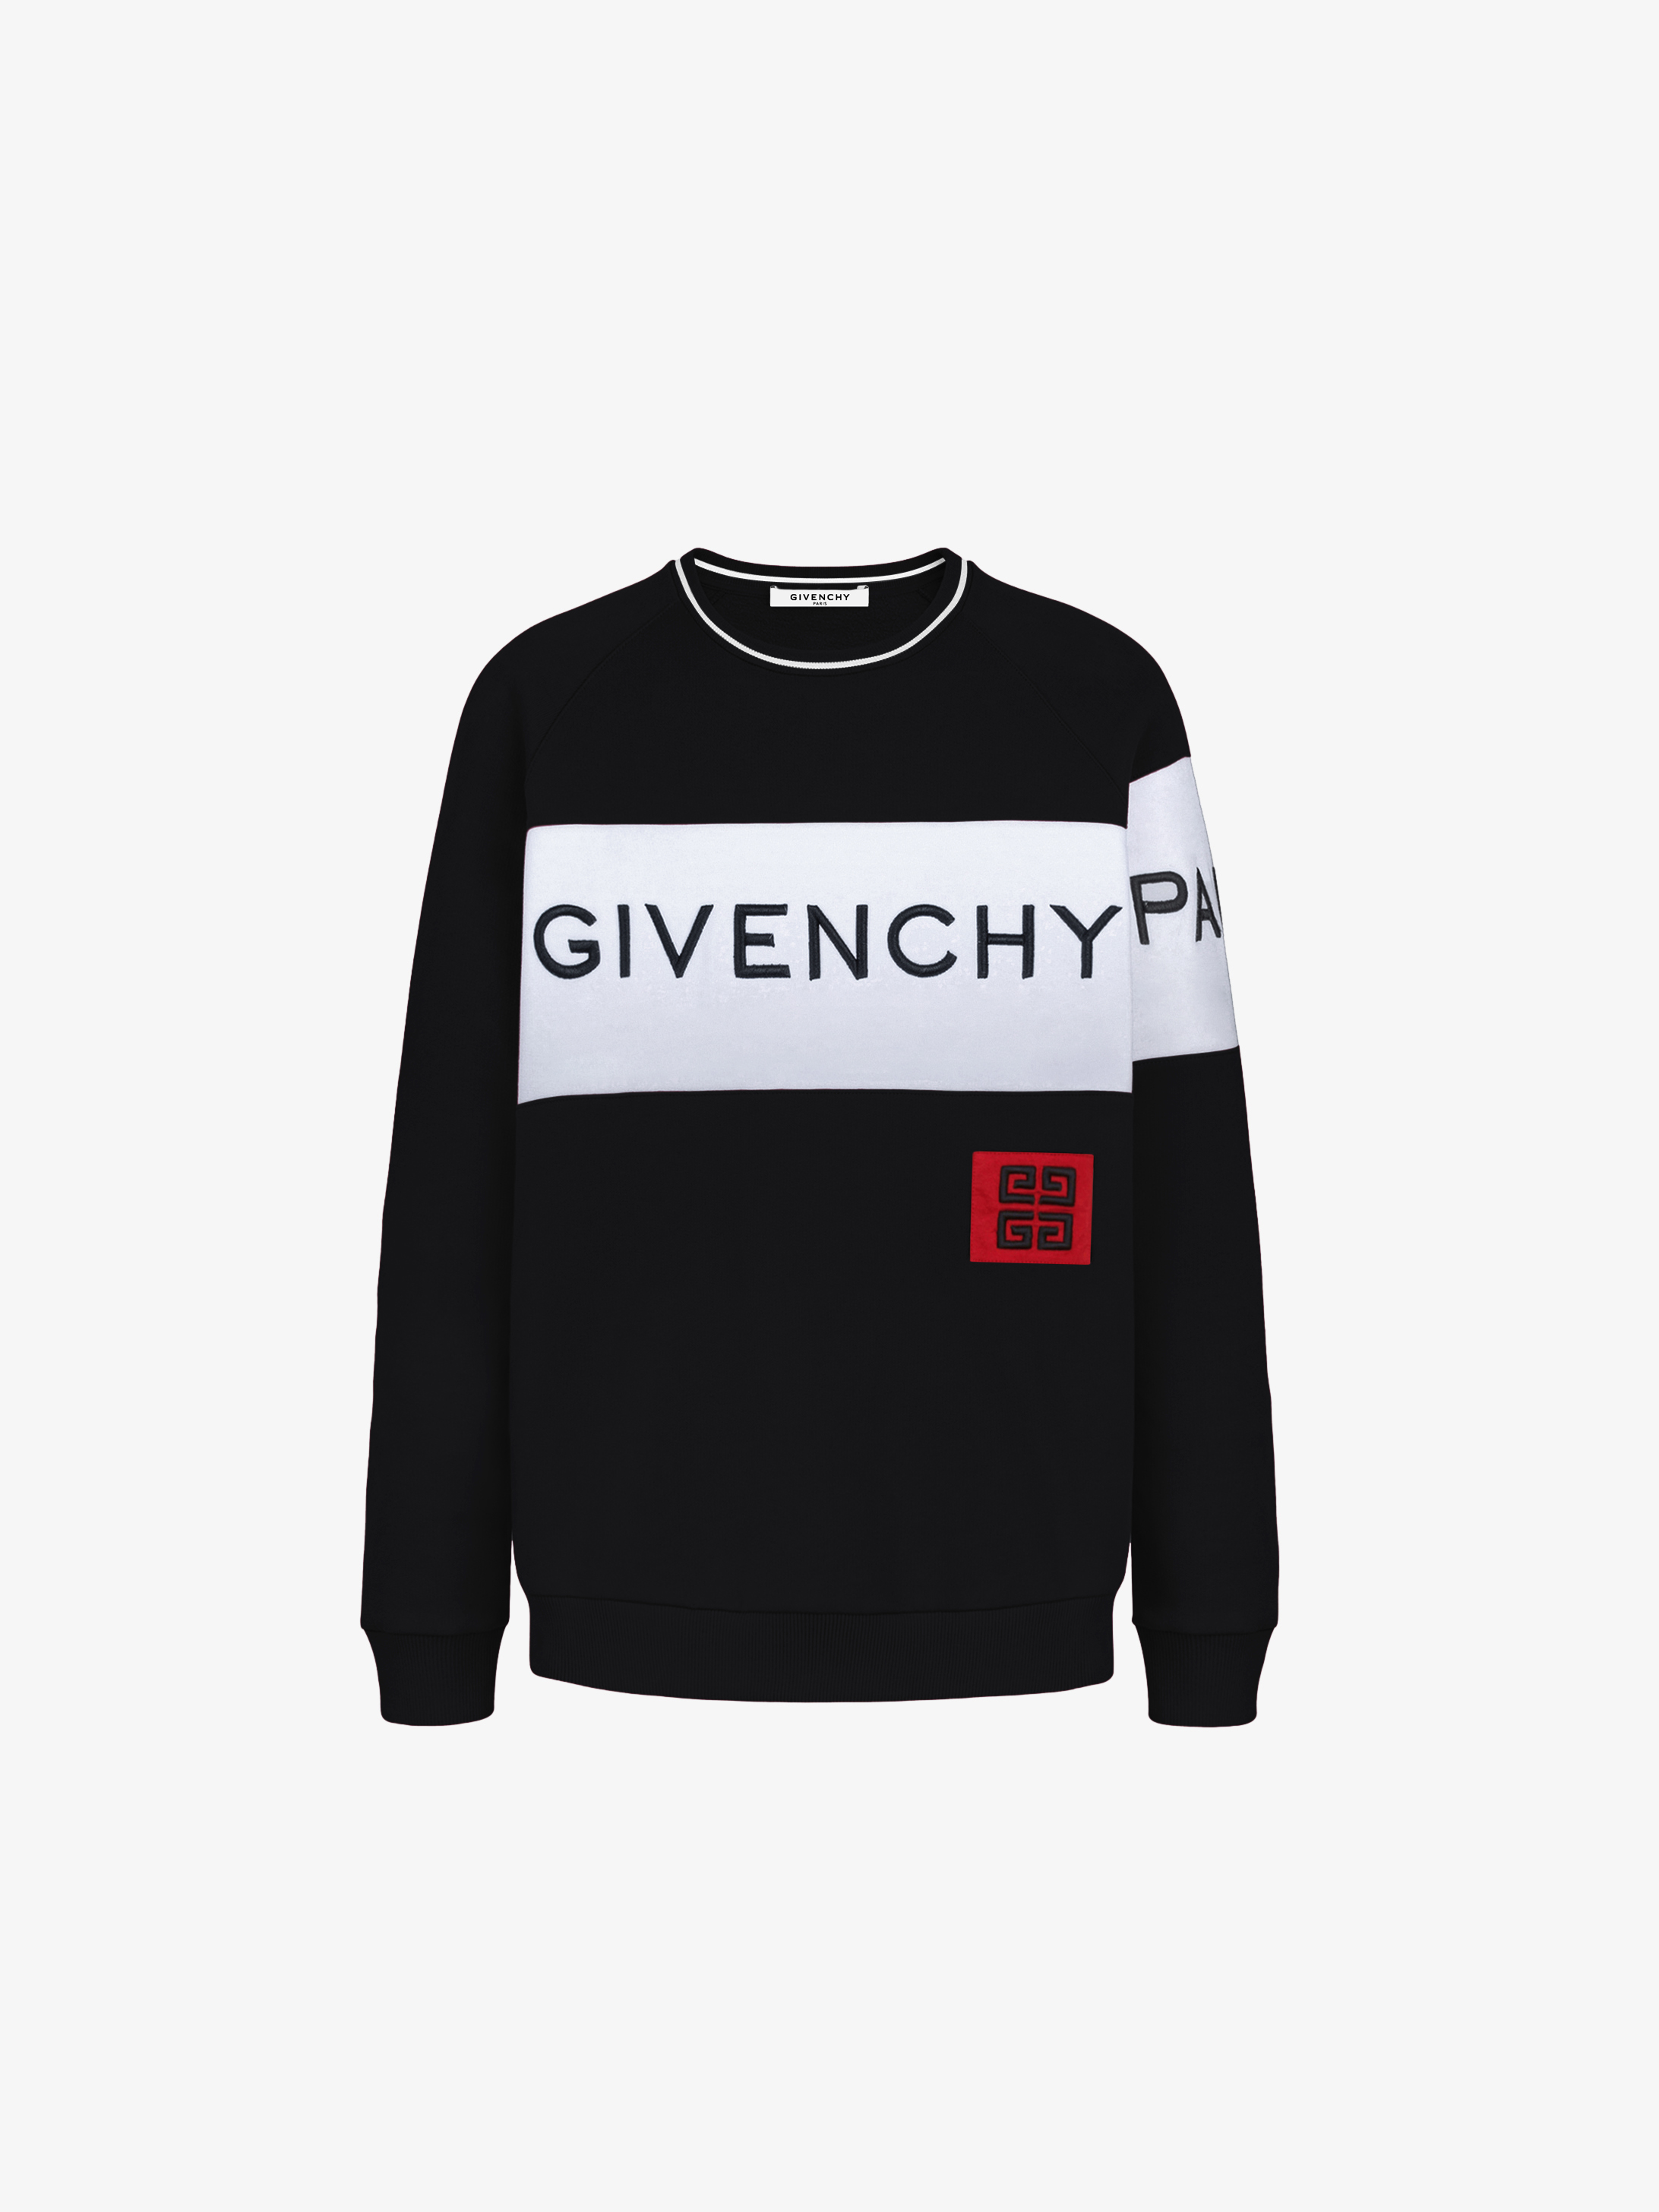 GIVENCHY PARIS 4G embroidered sweatshirt